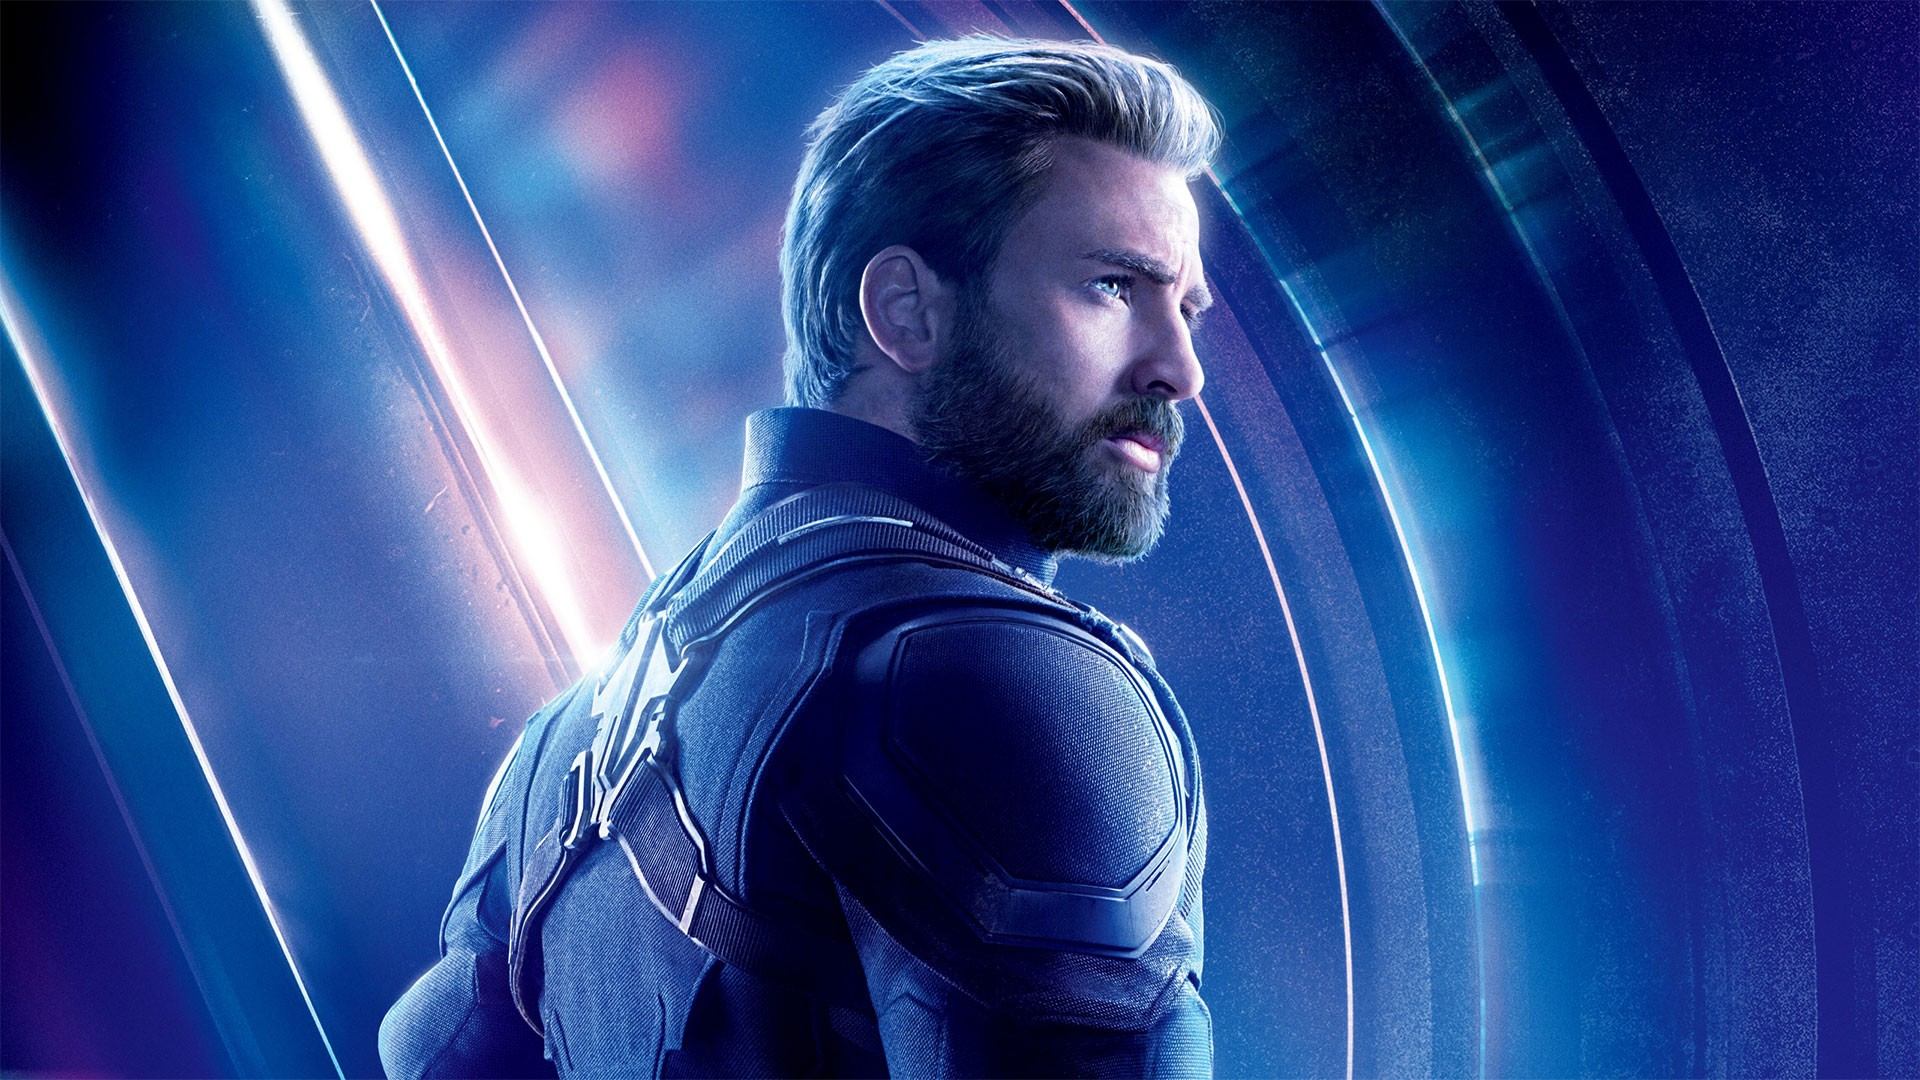 Chris Evans Captain America Avengers Endgame Wallpaper HD 2019 1920x1080